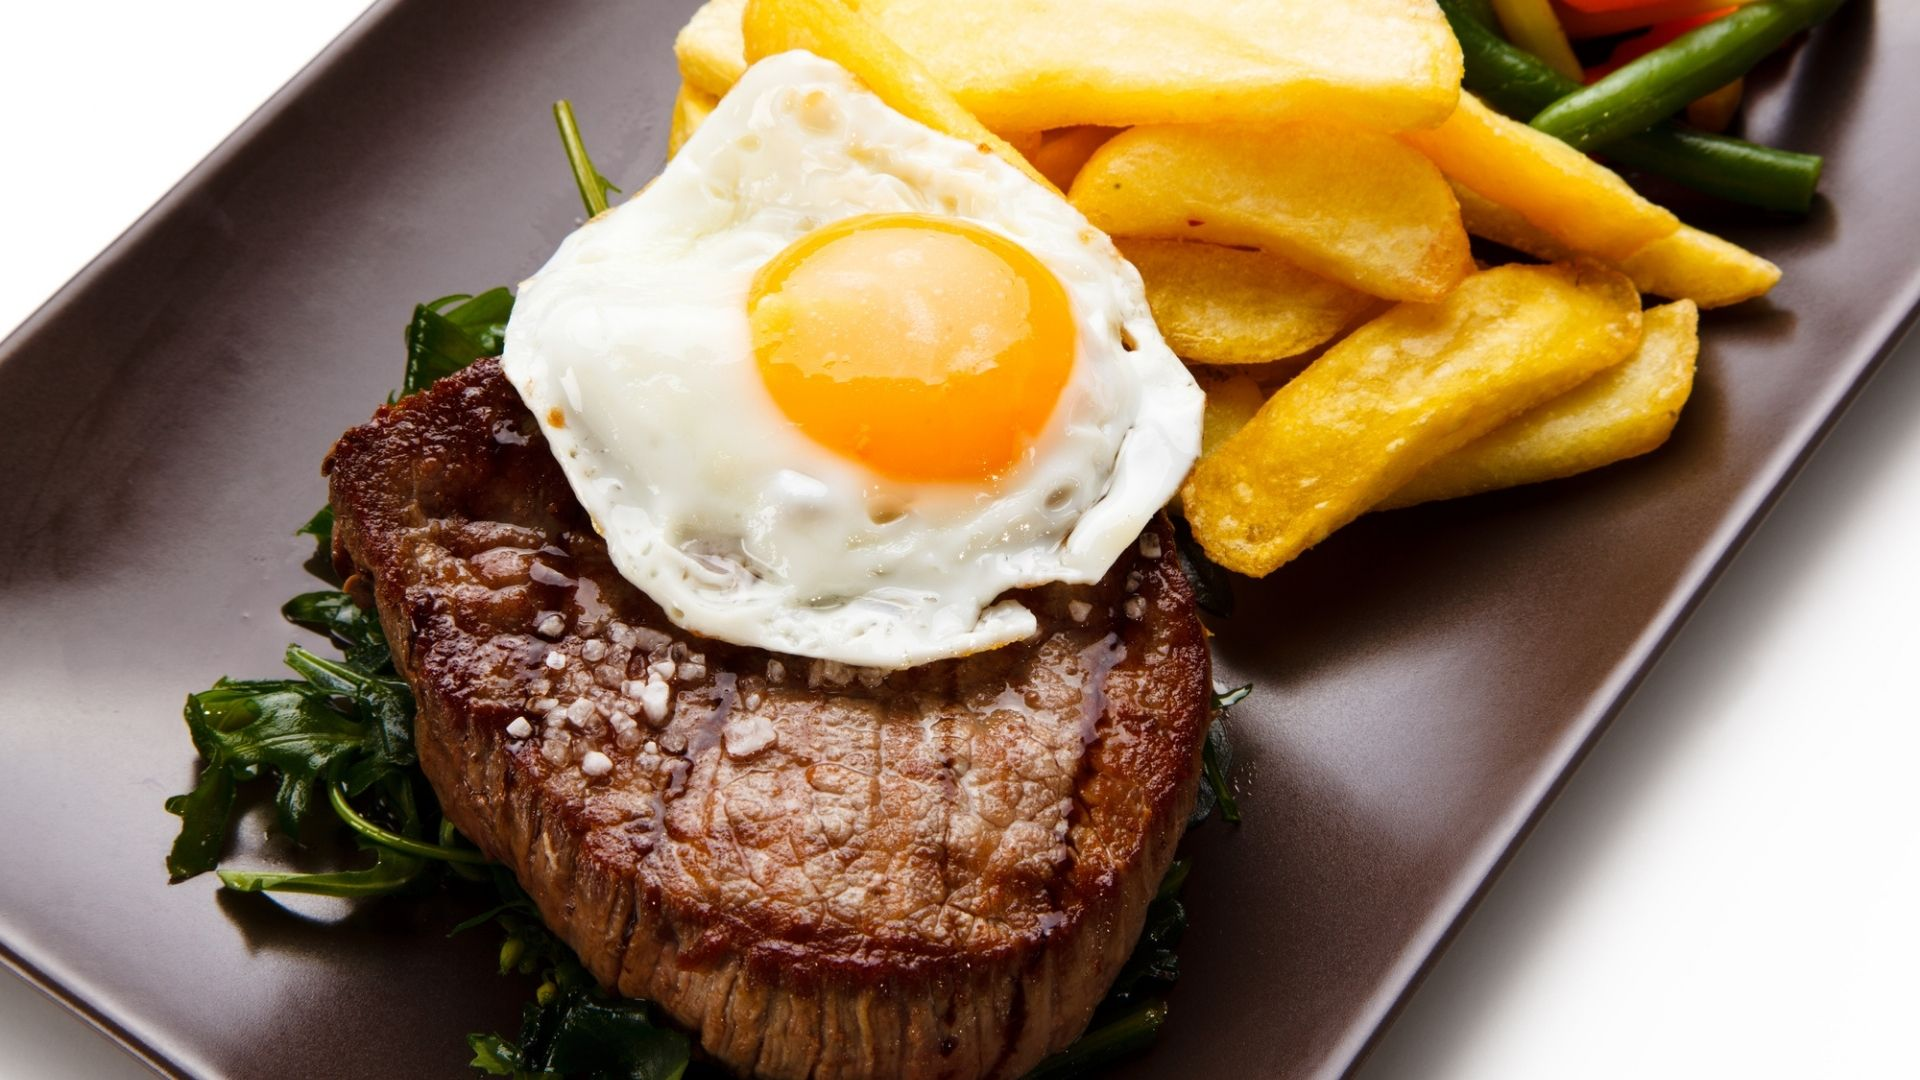 Steak and Egg from a Toaster Oven